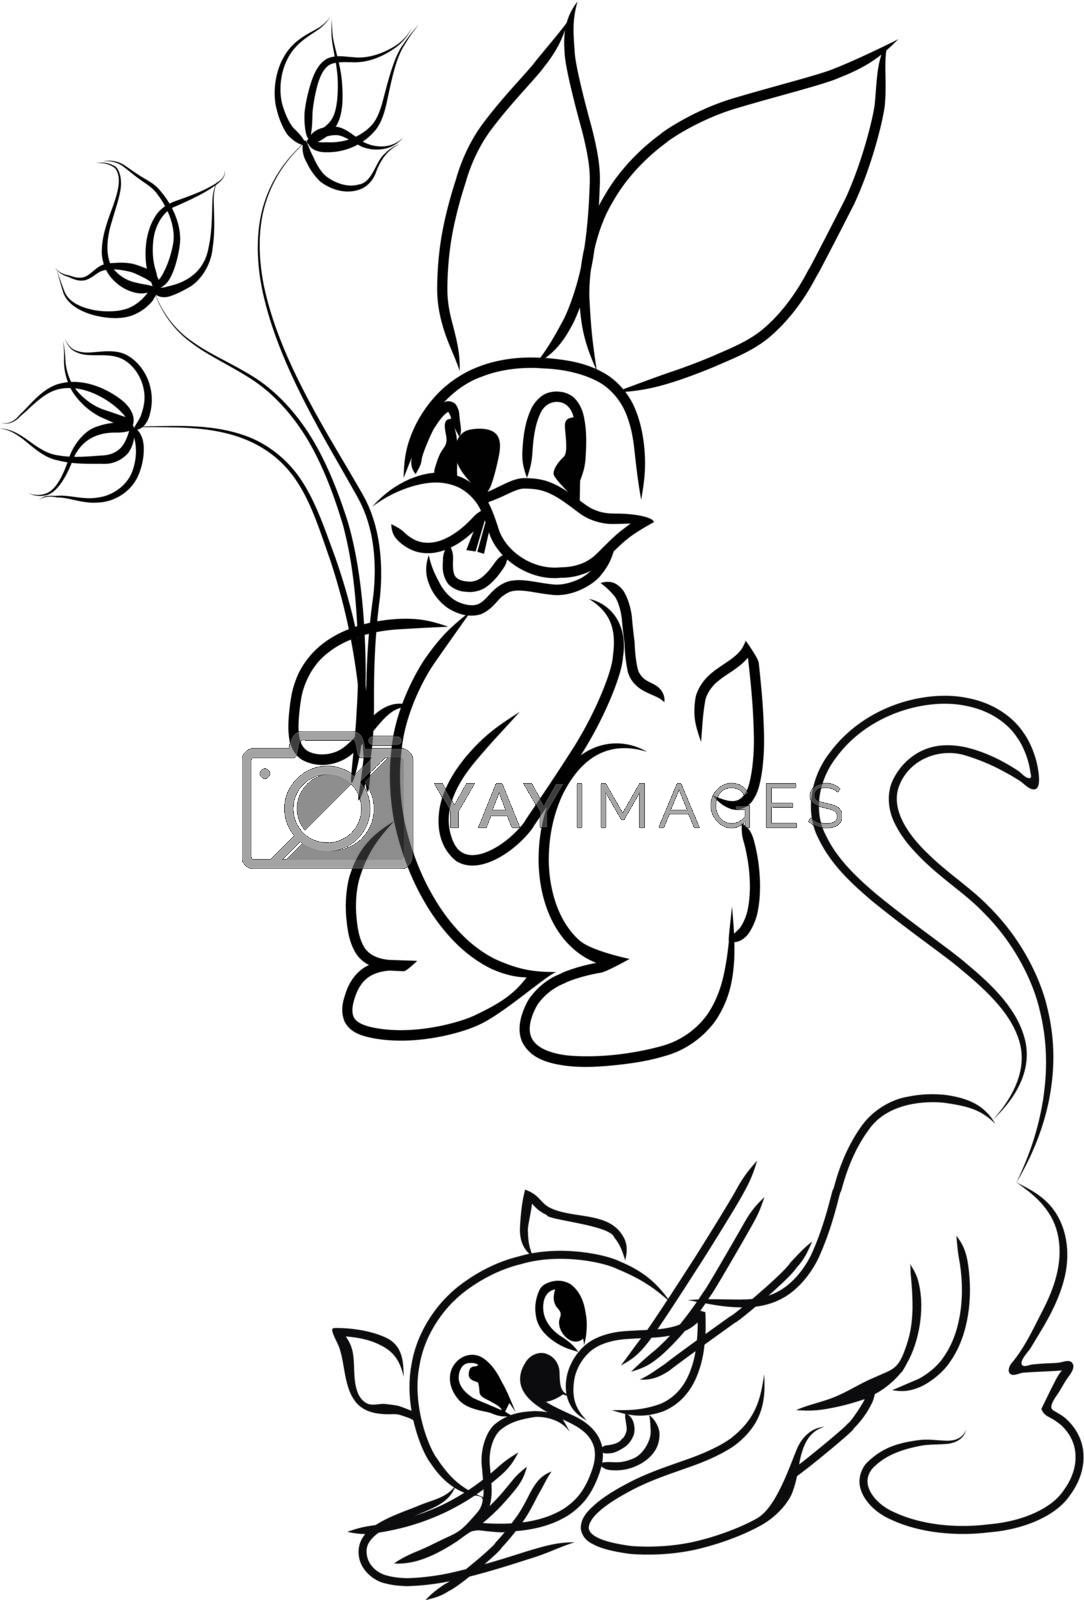 cartoon rabbit with cat in black and white